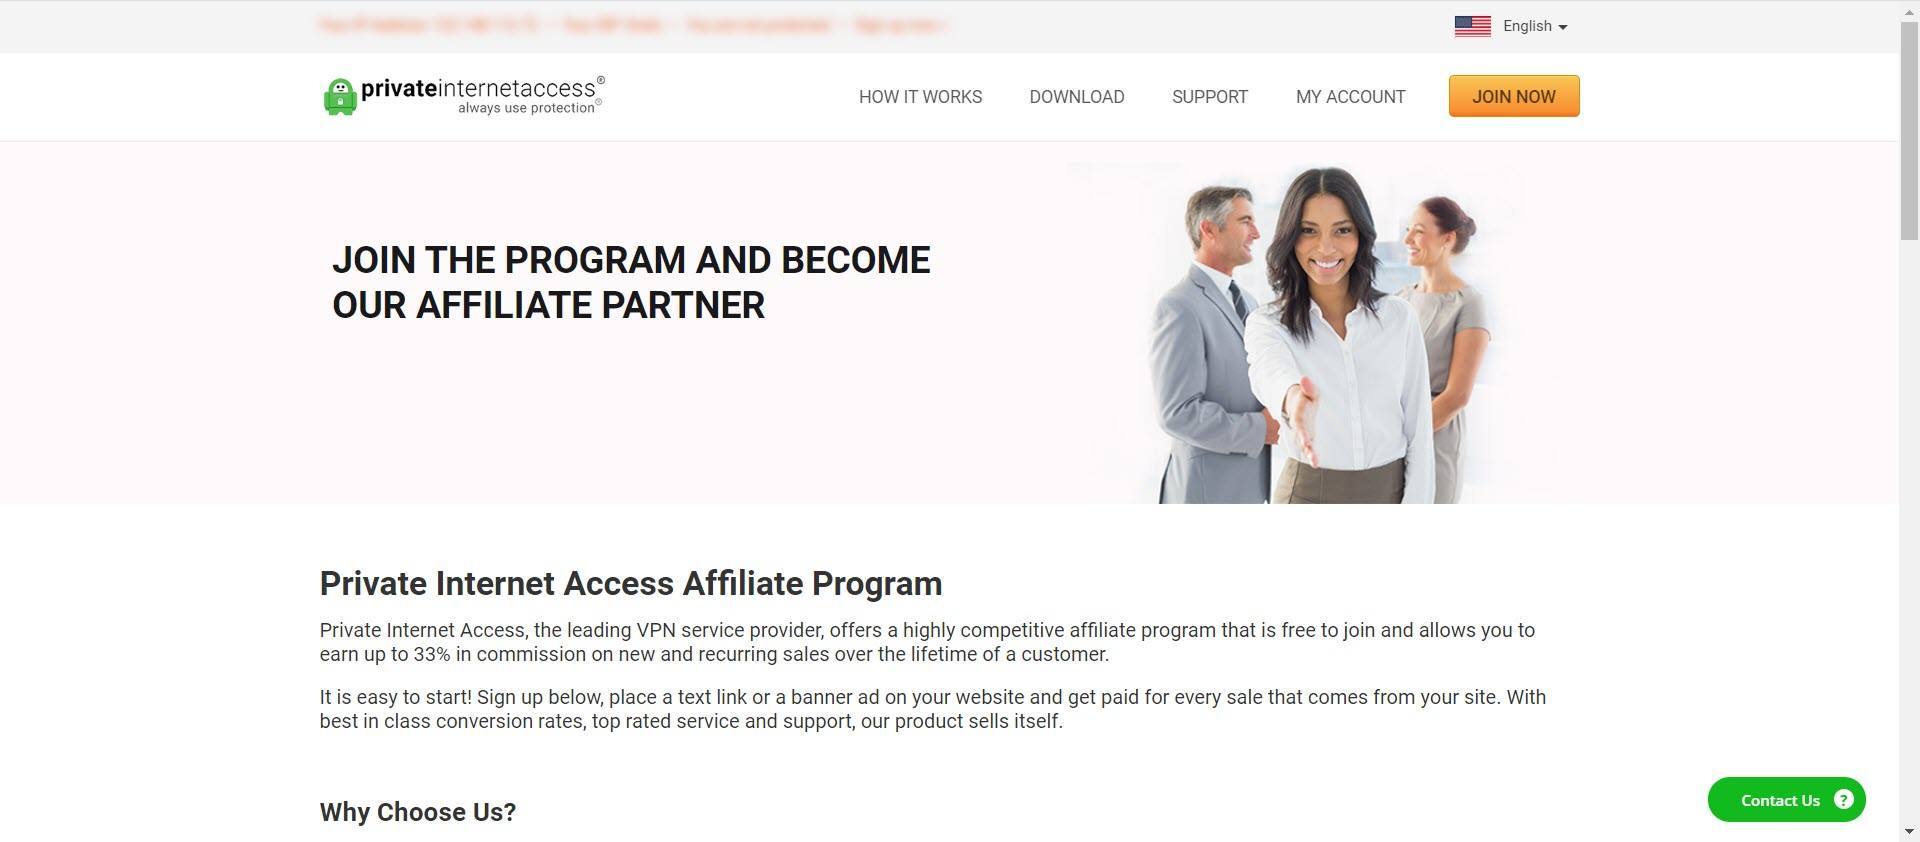 recurring Affiliate programs - free internet access affiliate